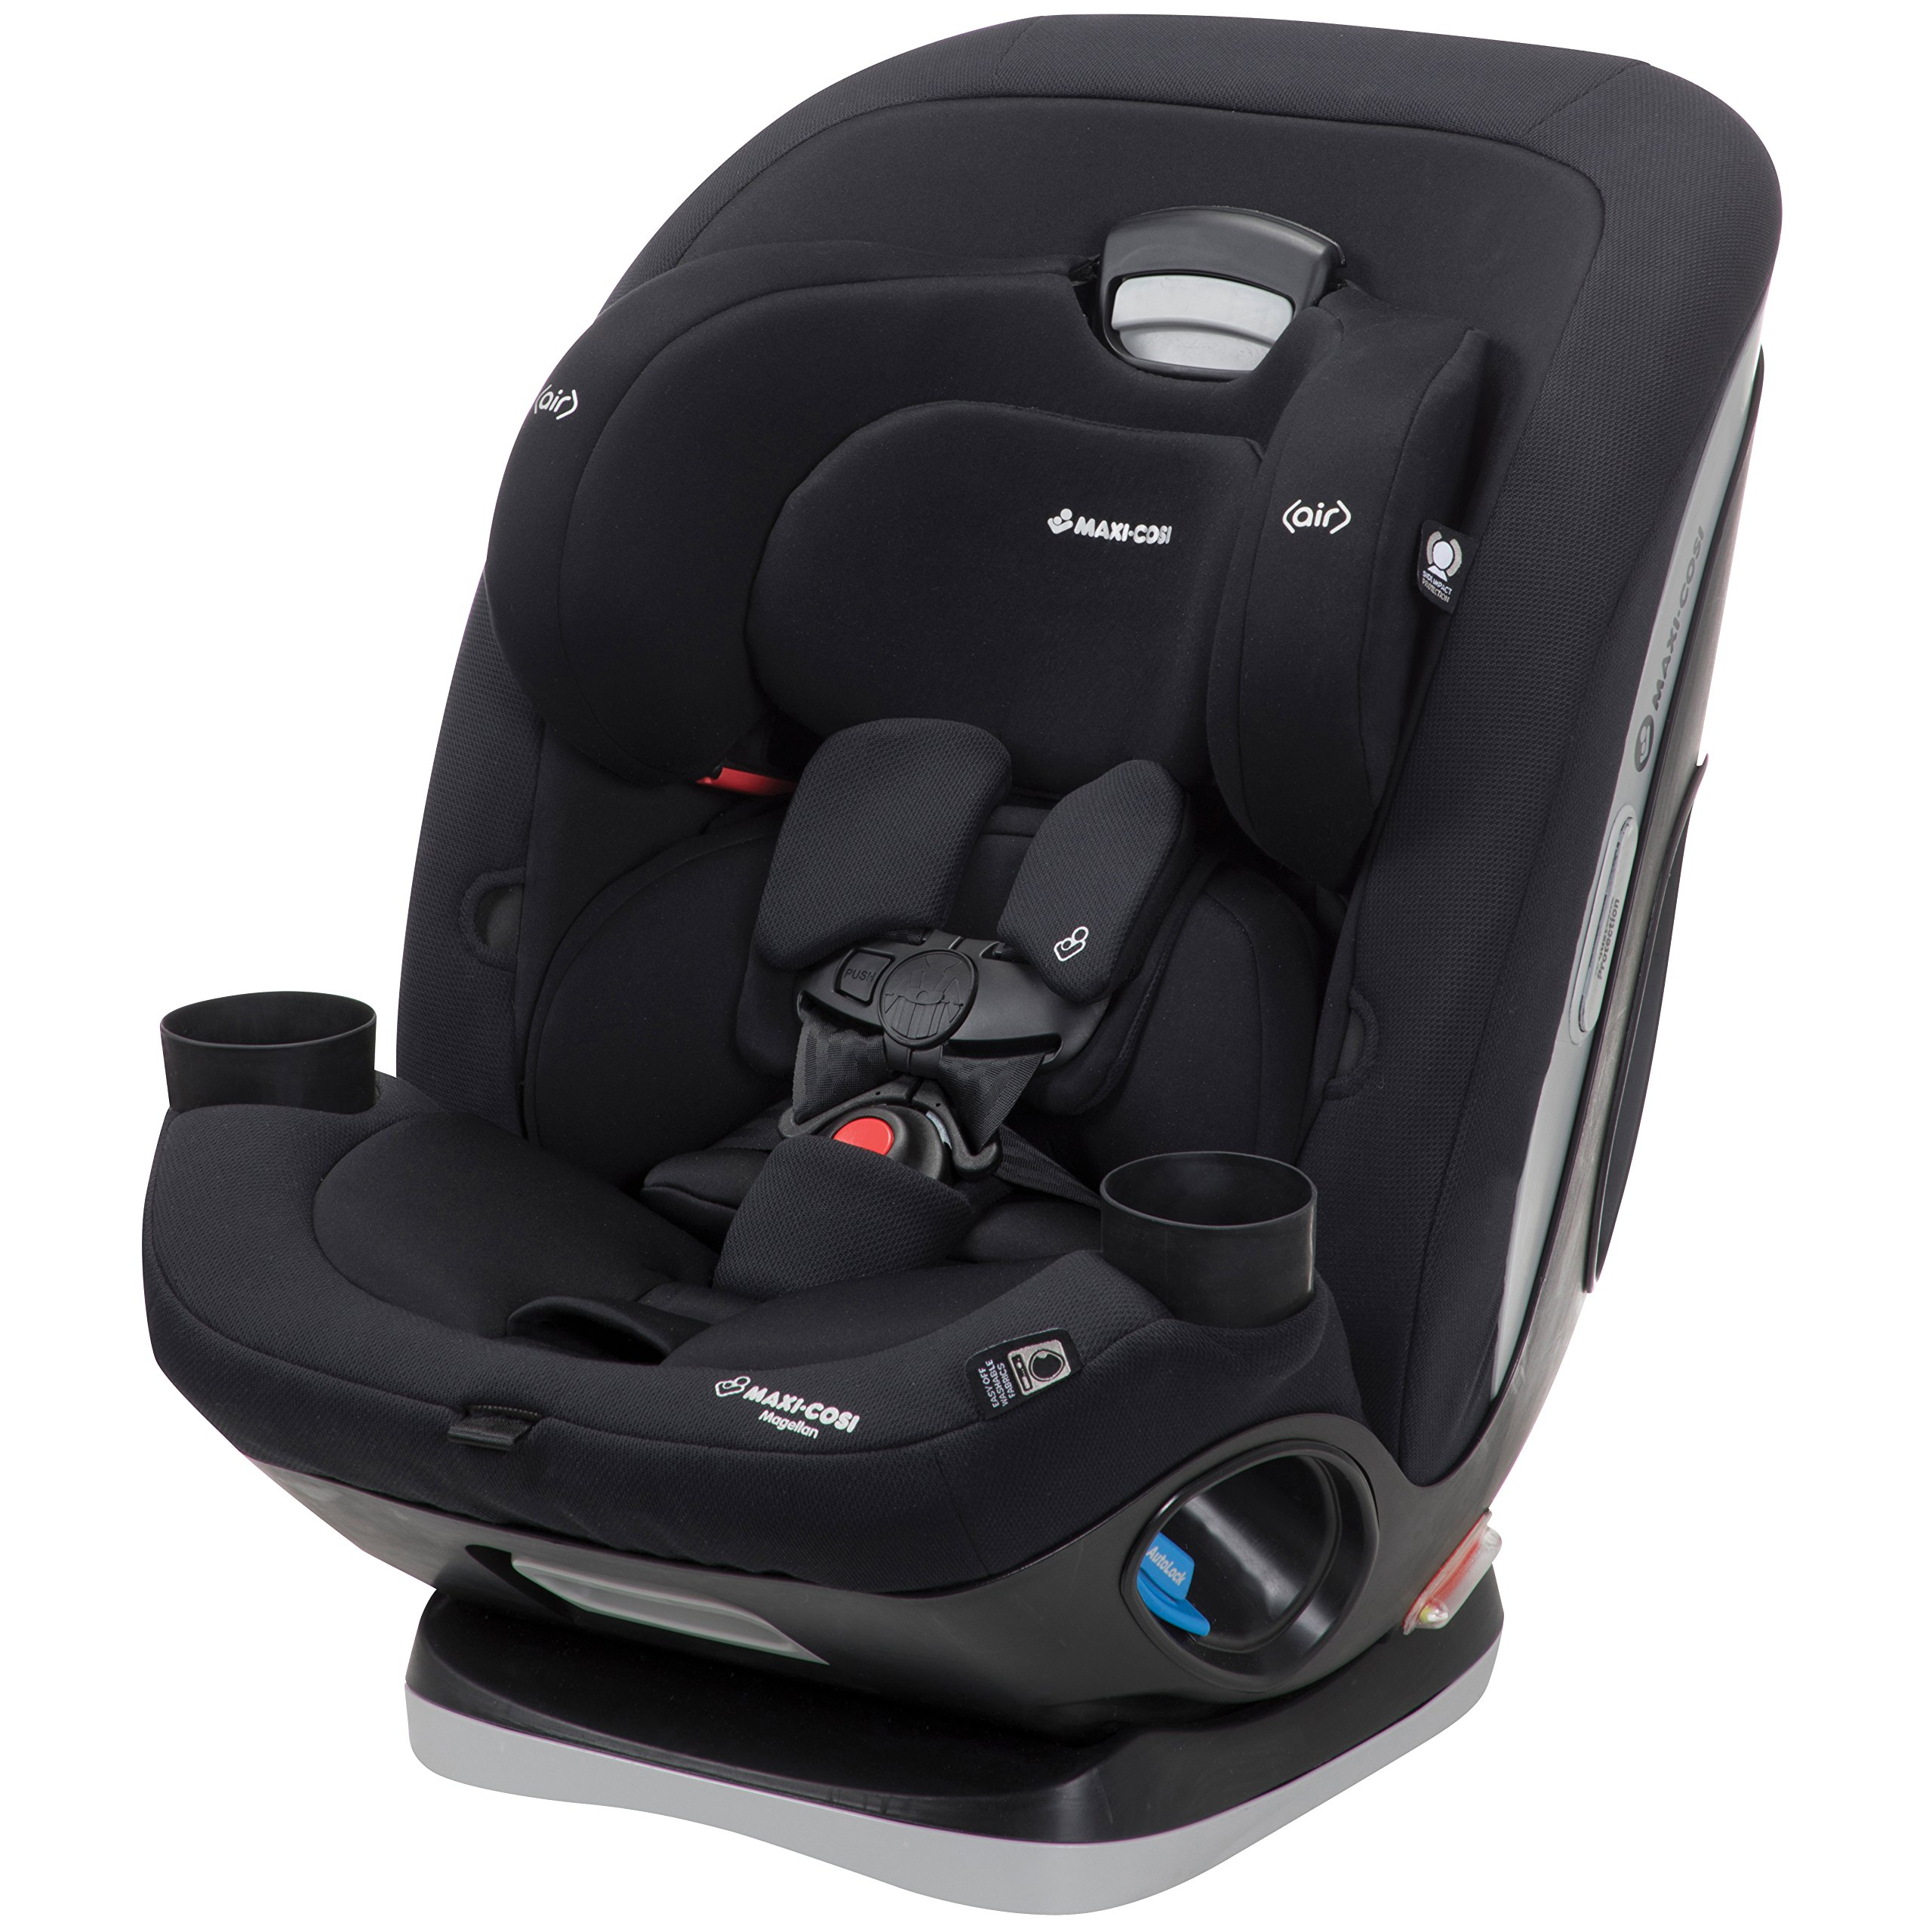 How Much Does The Maxi Cosi Car Seat Weigh